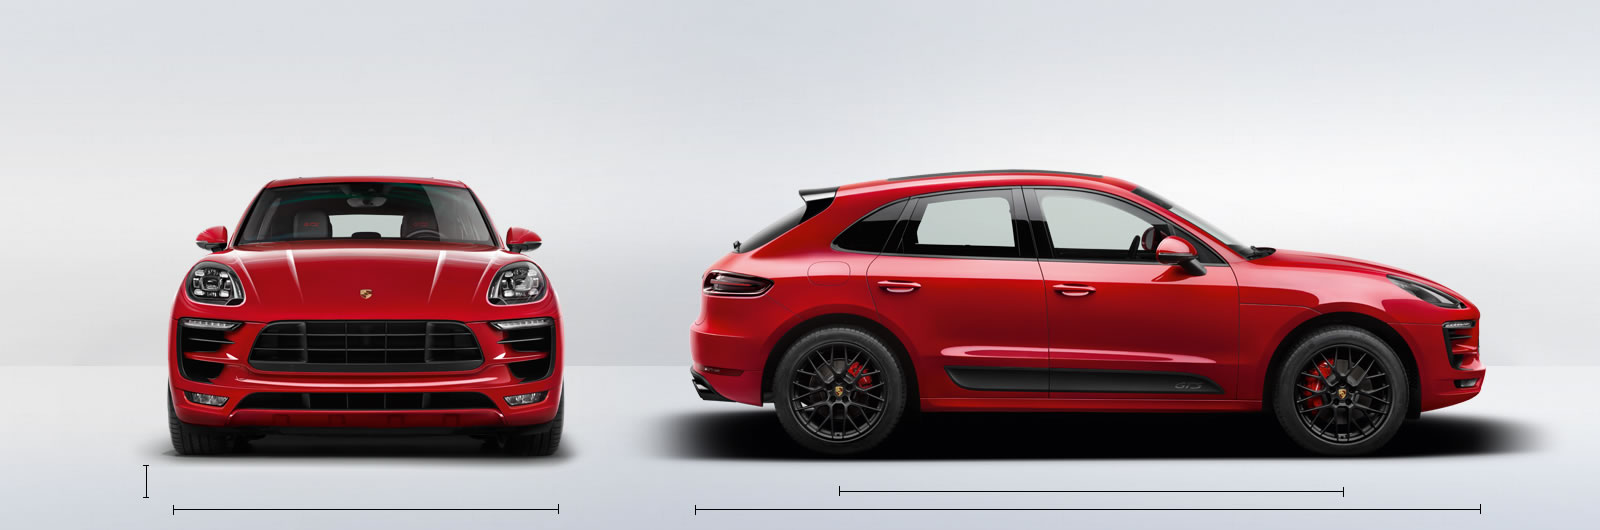 Macan GTS Specifications